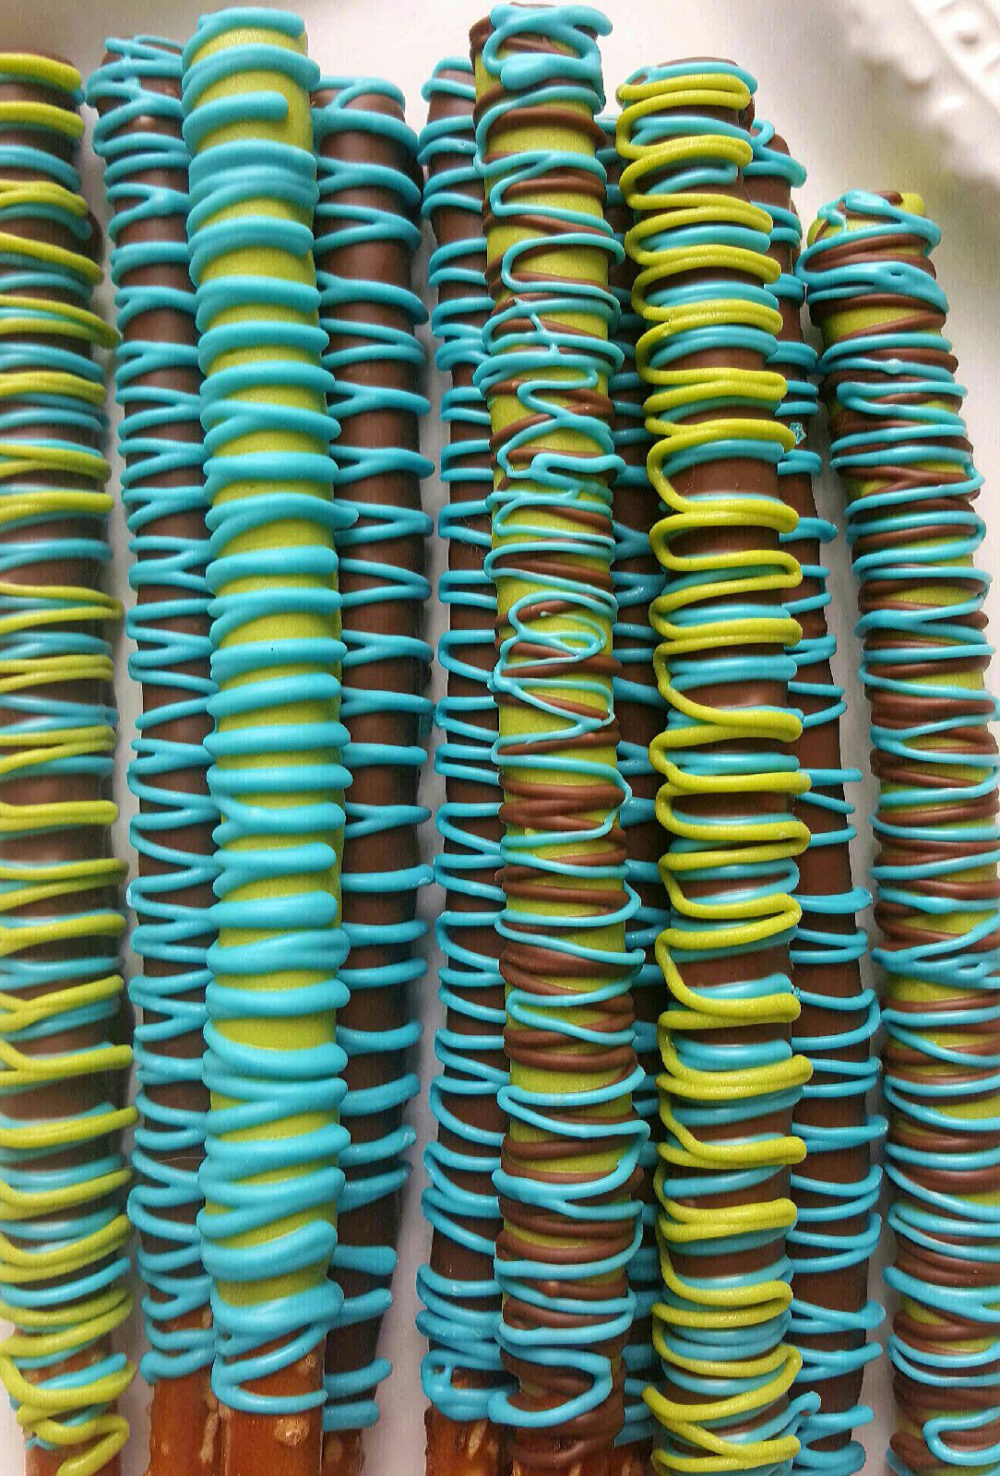 Gourmet Milk Chocolate Covered Pretzels Rods Party Favor Baby Shower Communion Anniversary Wedding Bridal Graduation Corporate Fathers Day